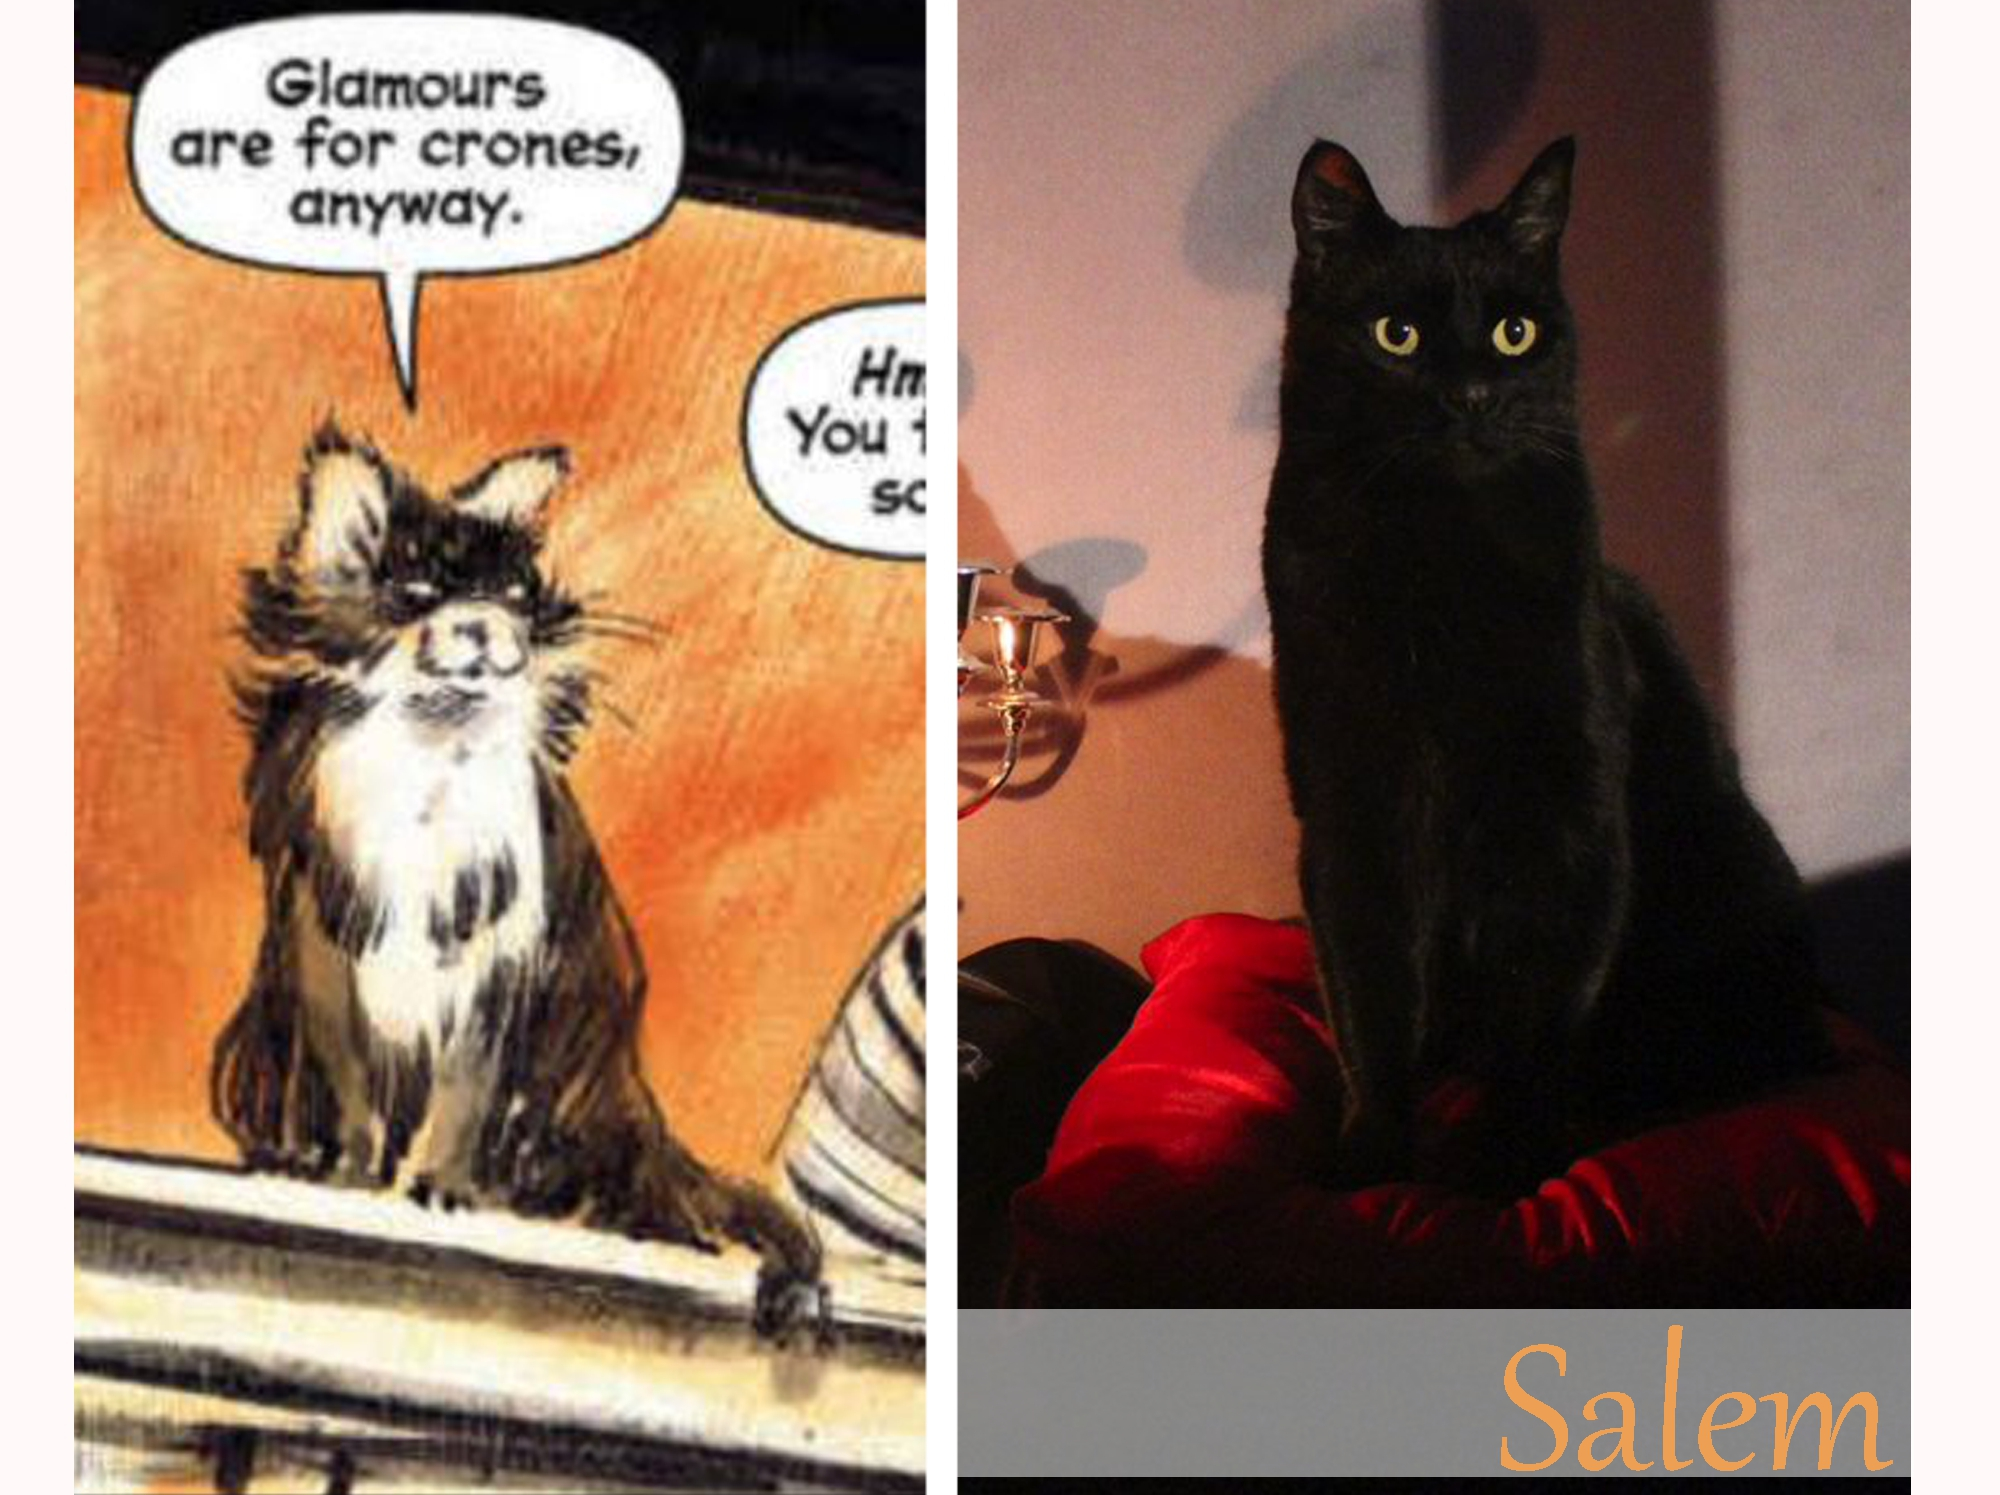 https://talilifestyle.com/2019/05/24/chilling-adventures-of-sabrina-:-t-v-show-comic-comparison